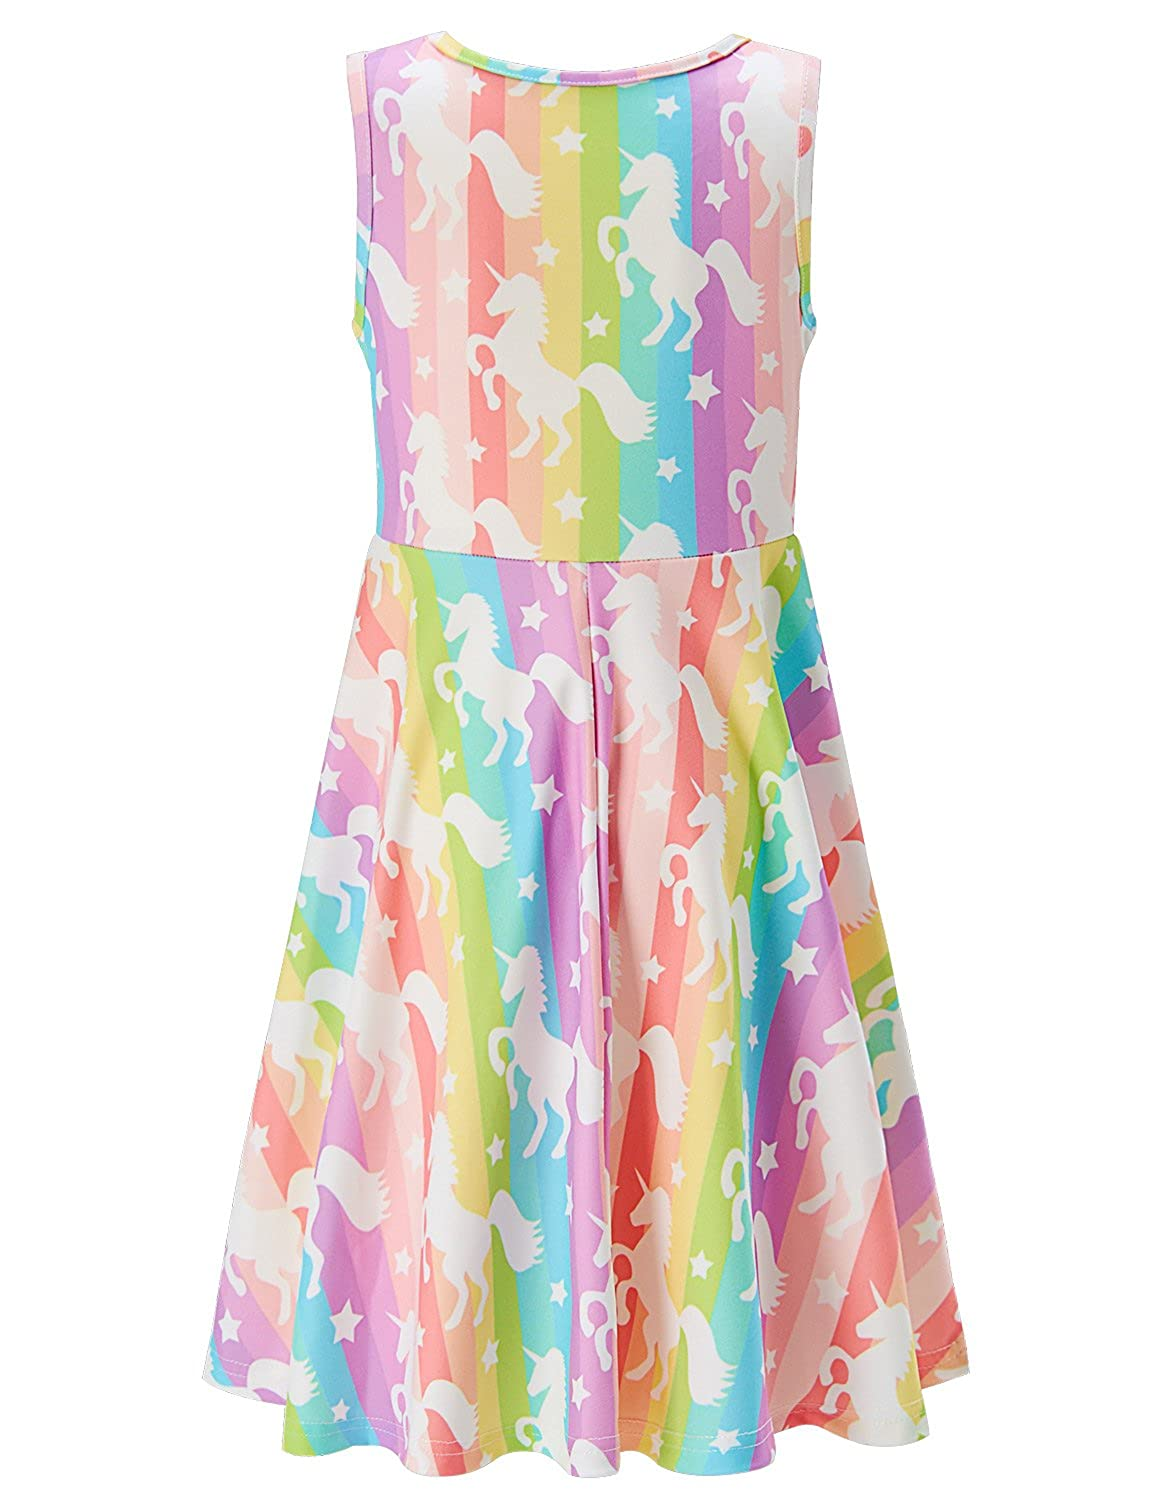 2cbc0d581ee Amazon.com  Funnycokid Girls Sleeveless Casual Dress Kids Holiday Party  Printing Dresses 4-13 Years  Clothing